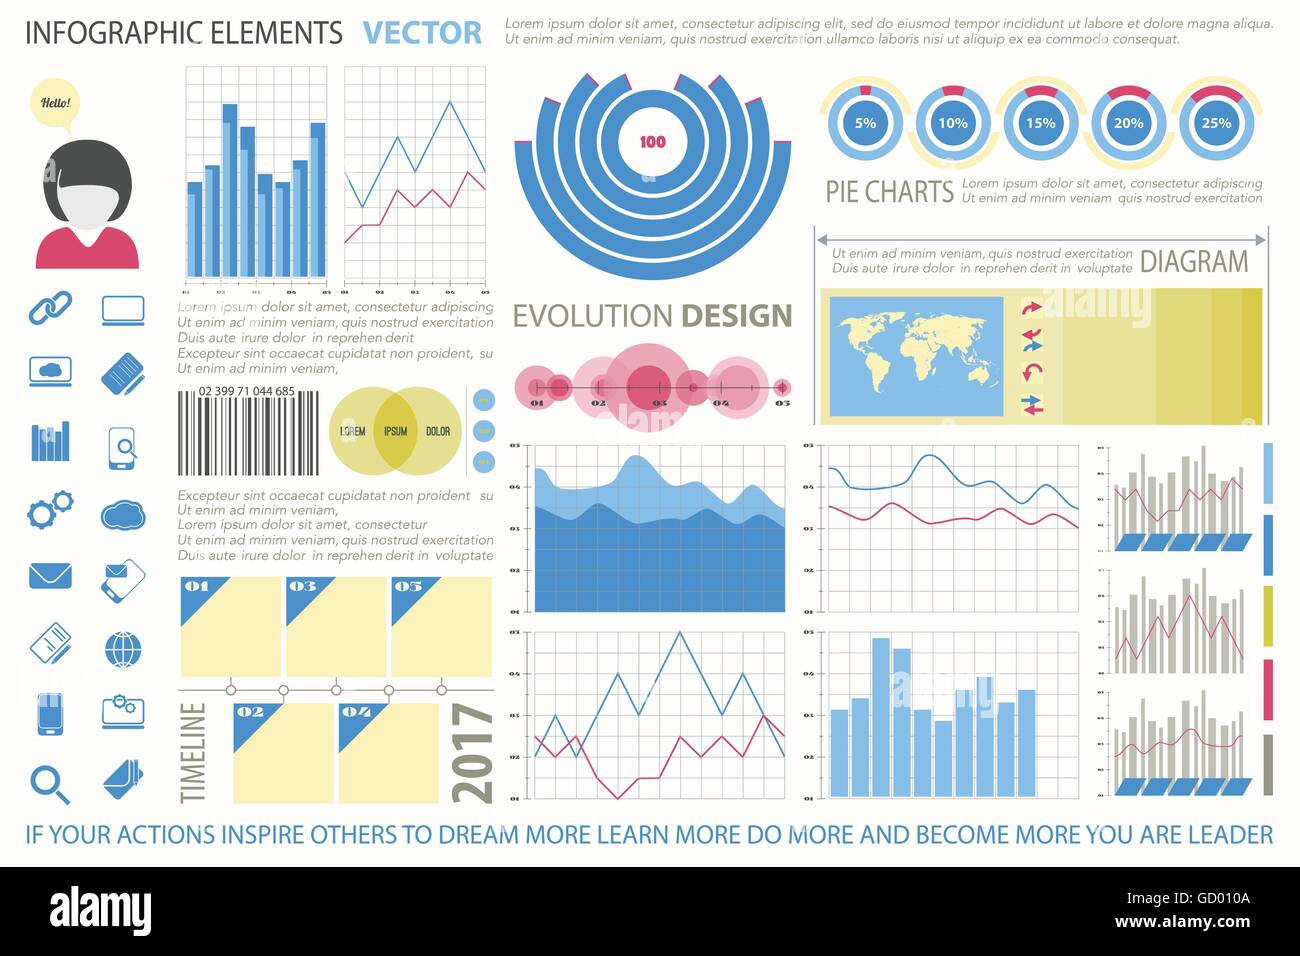 Info graphic elements web technology icons vector time line stock info graphic elements web technology icons vector time line diagram arrow symbol world map pie chart icon financial statis ccuart Choice Image